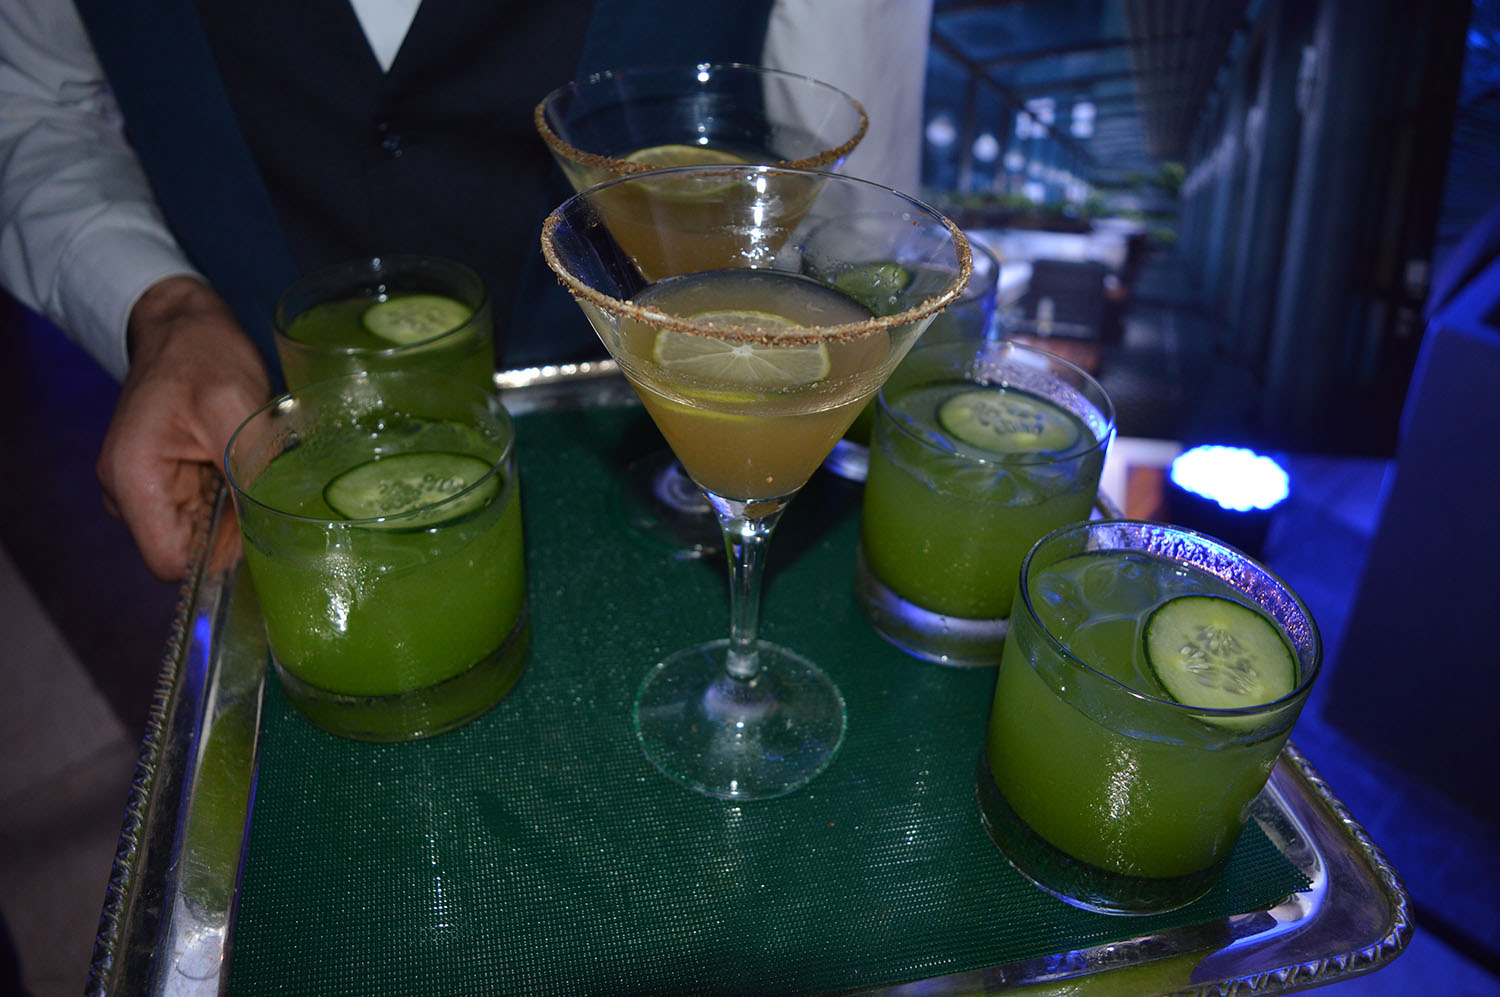 Cardamom and Thyme Cocktails - Photo credit: thespotist.com